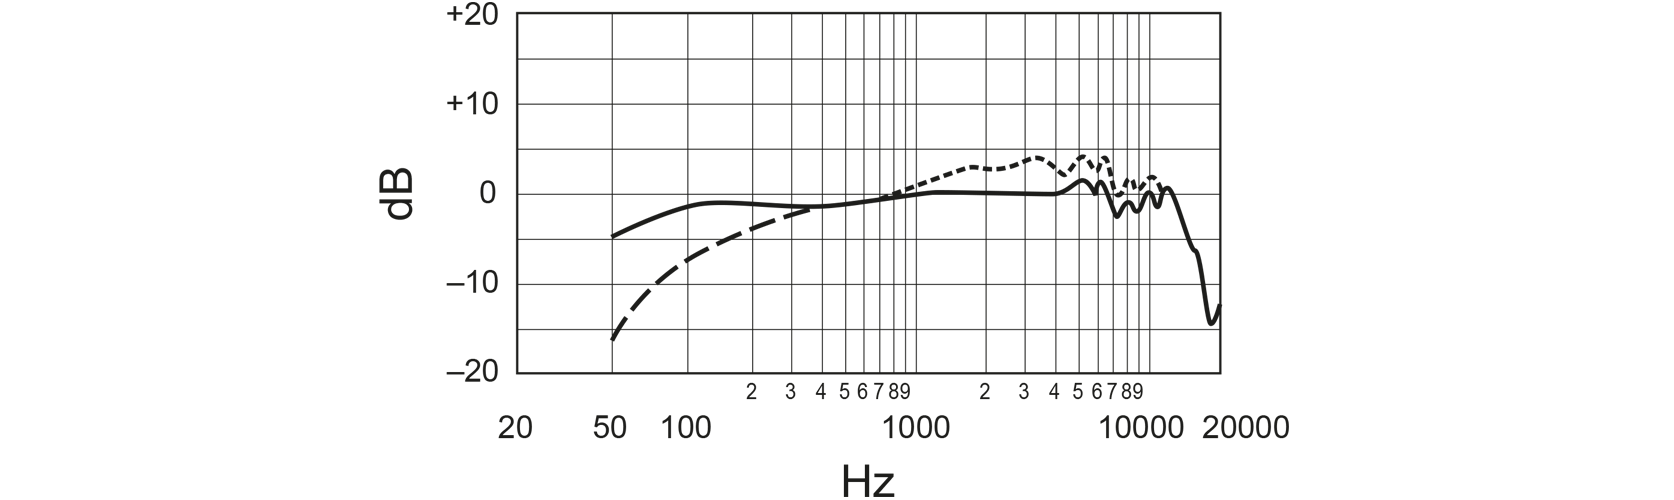 Shure SM7B Studio Microphone Frequency Response Curve Image